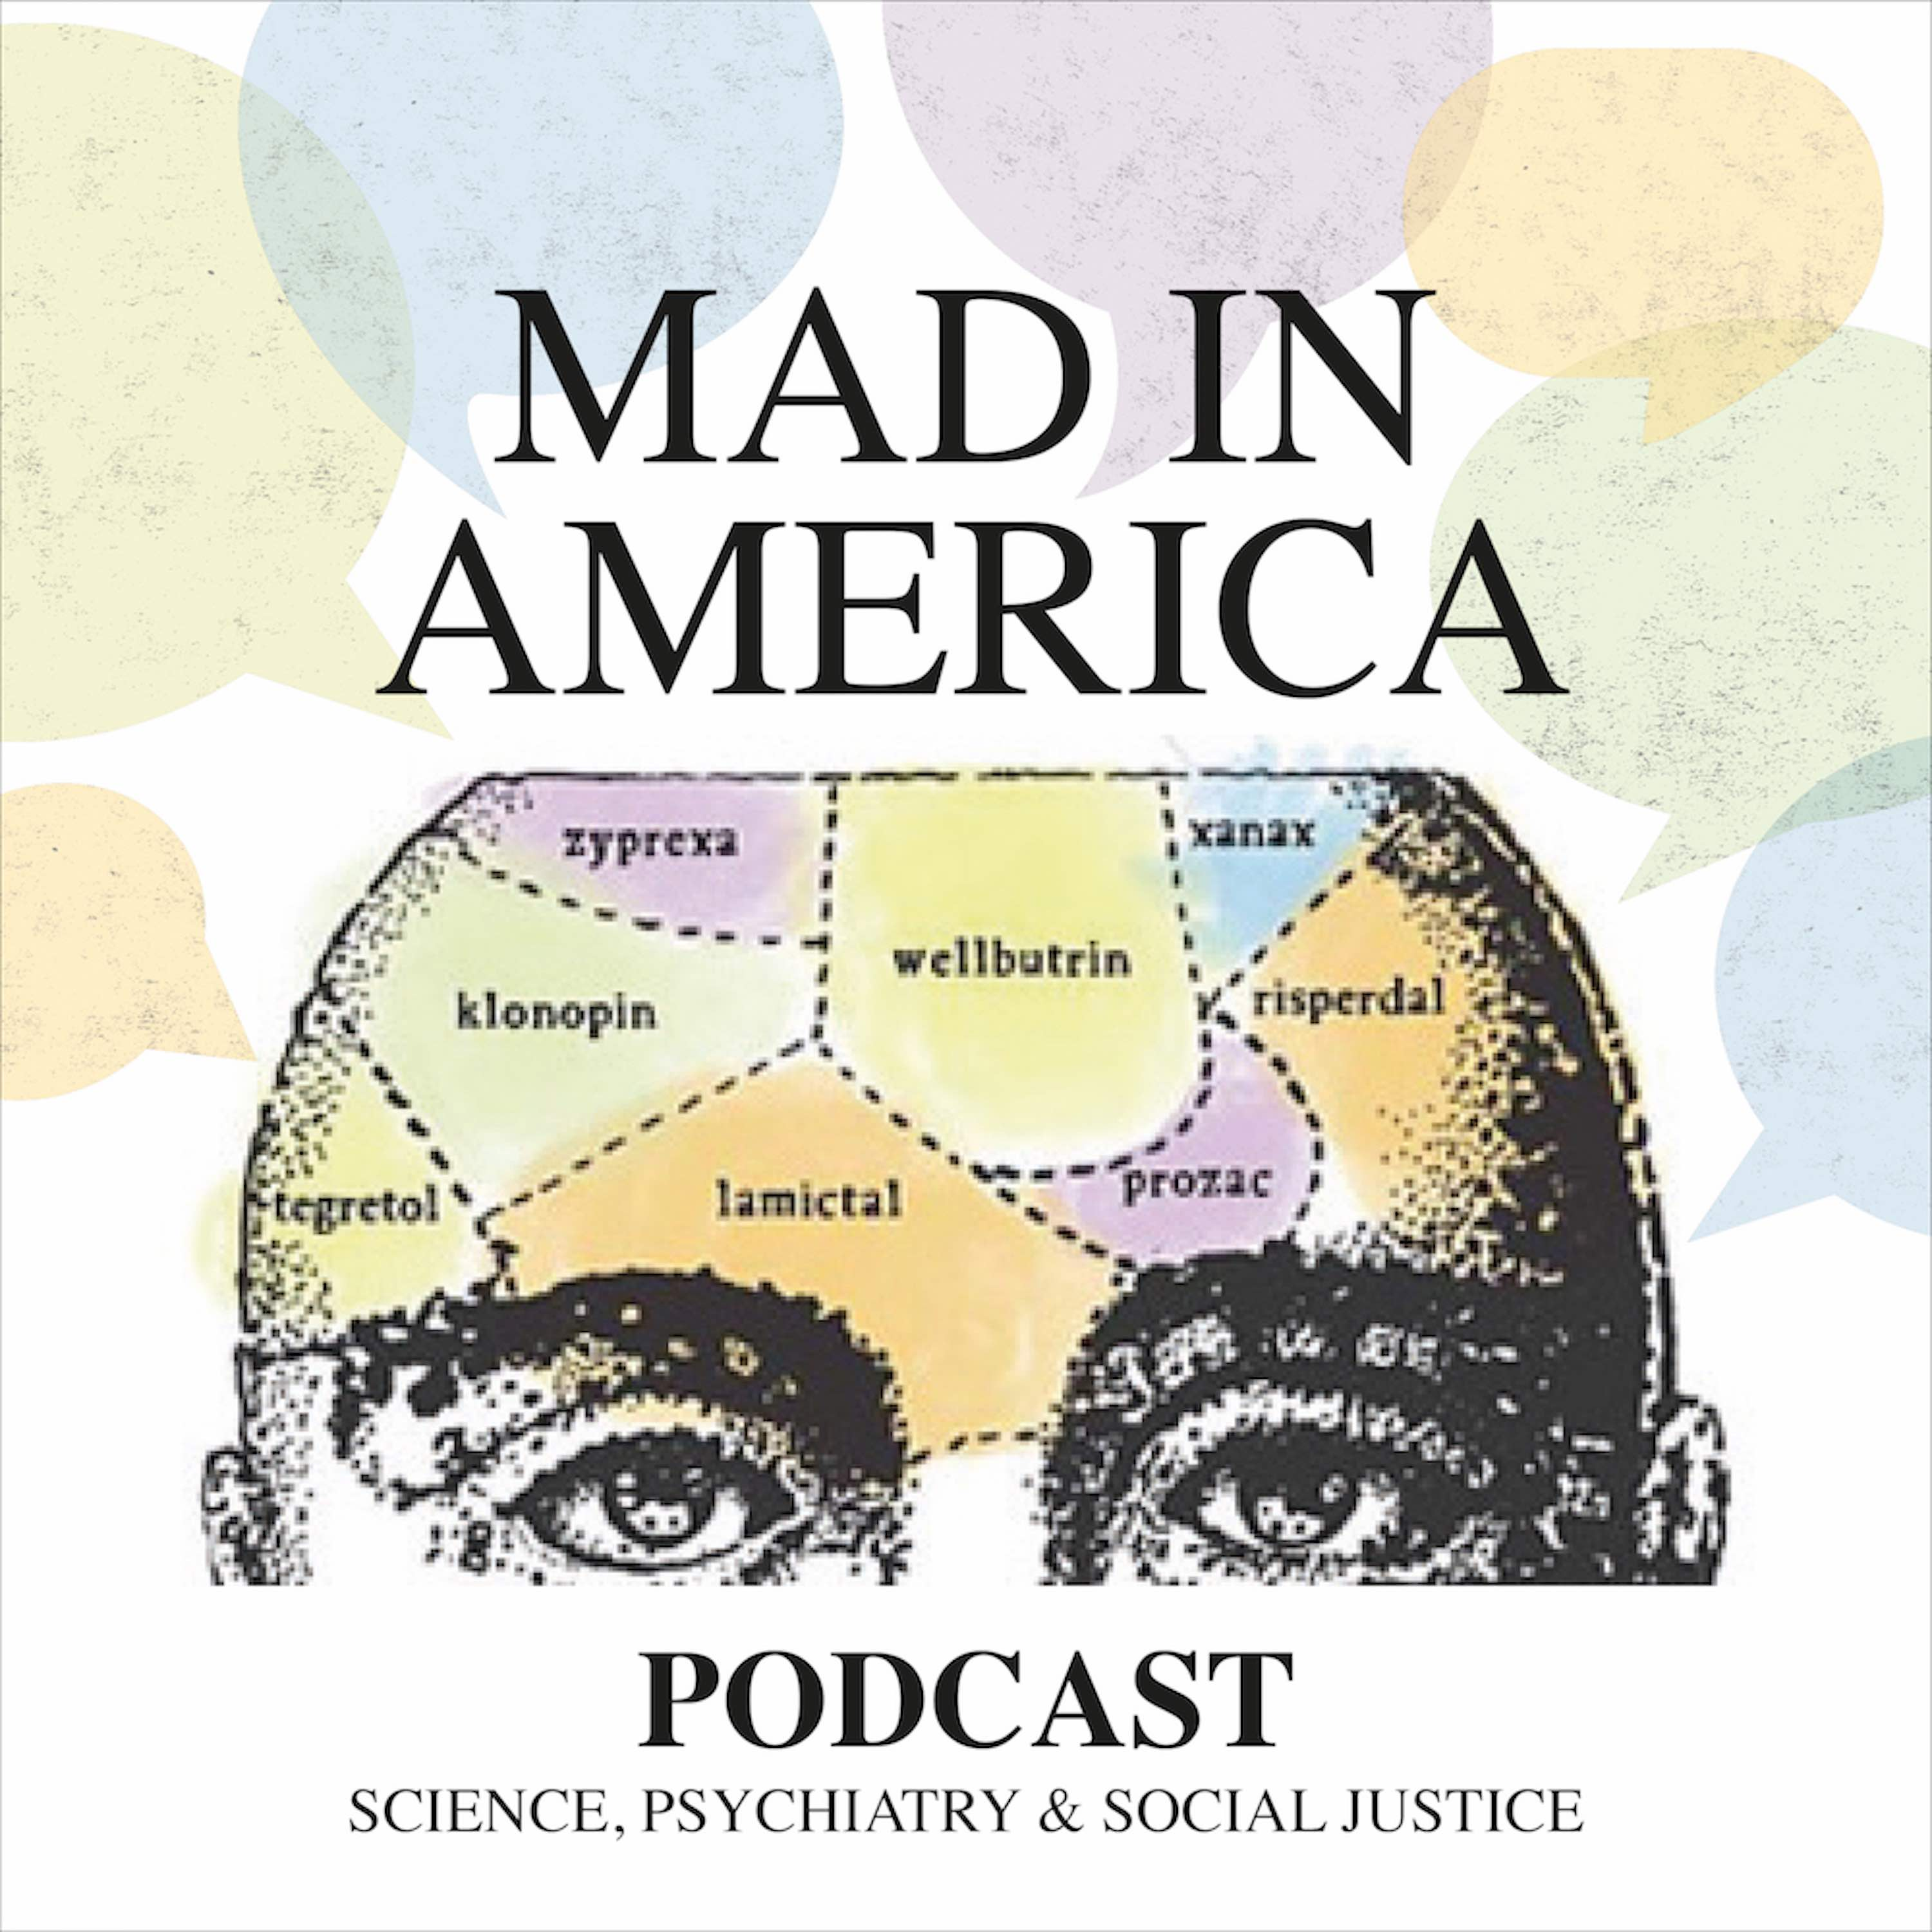 Mad in America: Rethinking Mental Health - Monica Cassani - Achieving Health in Body, Mind and Spirit